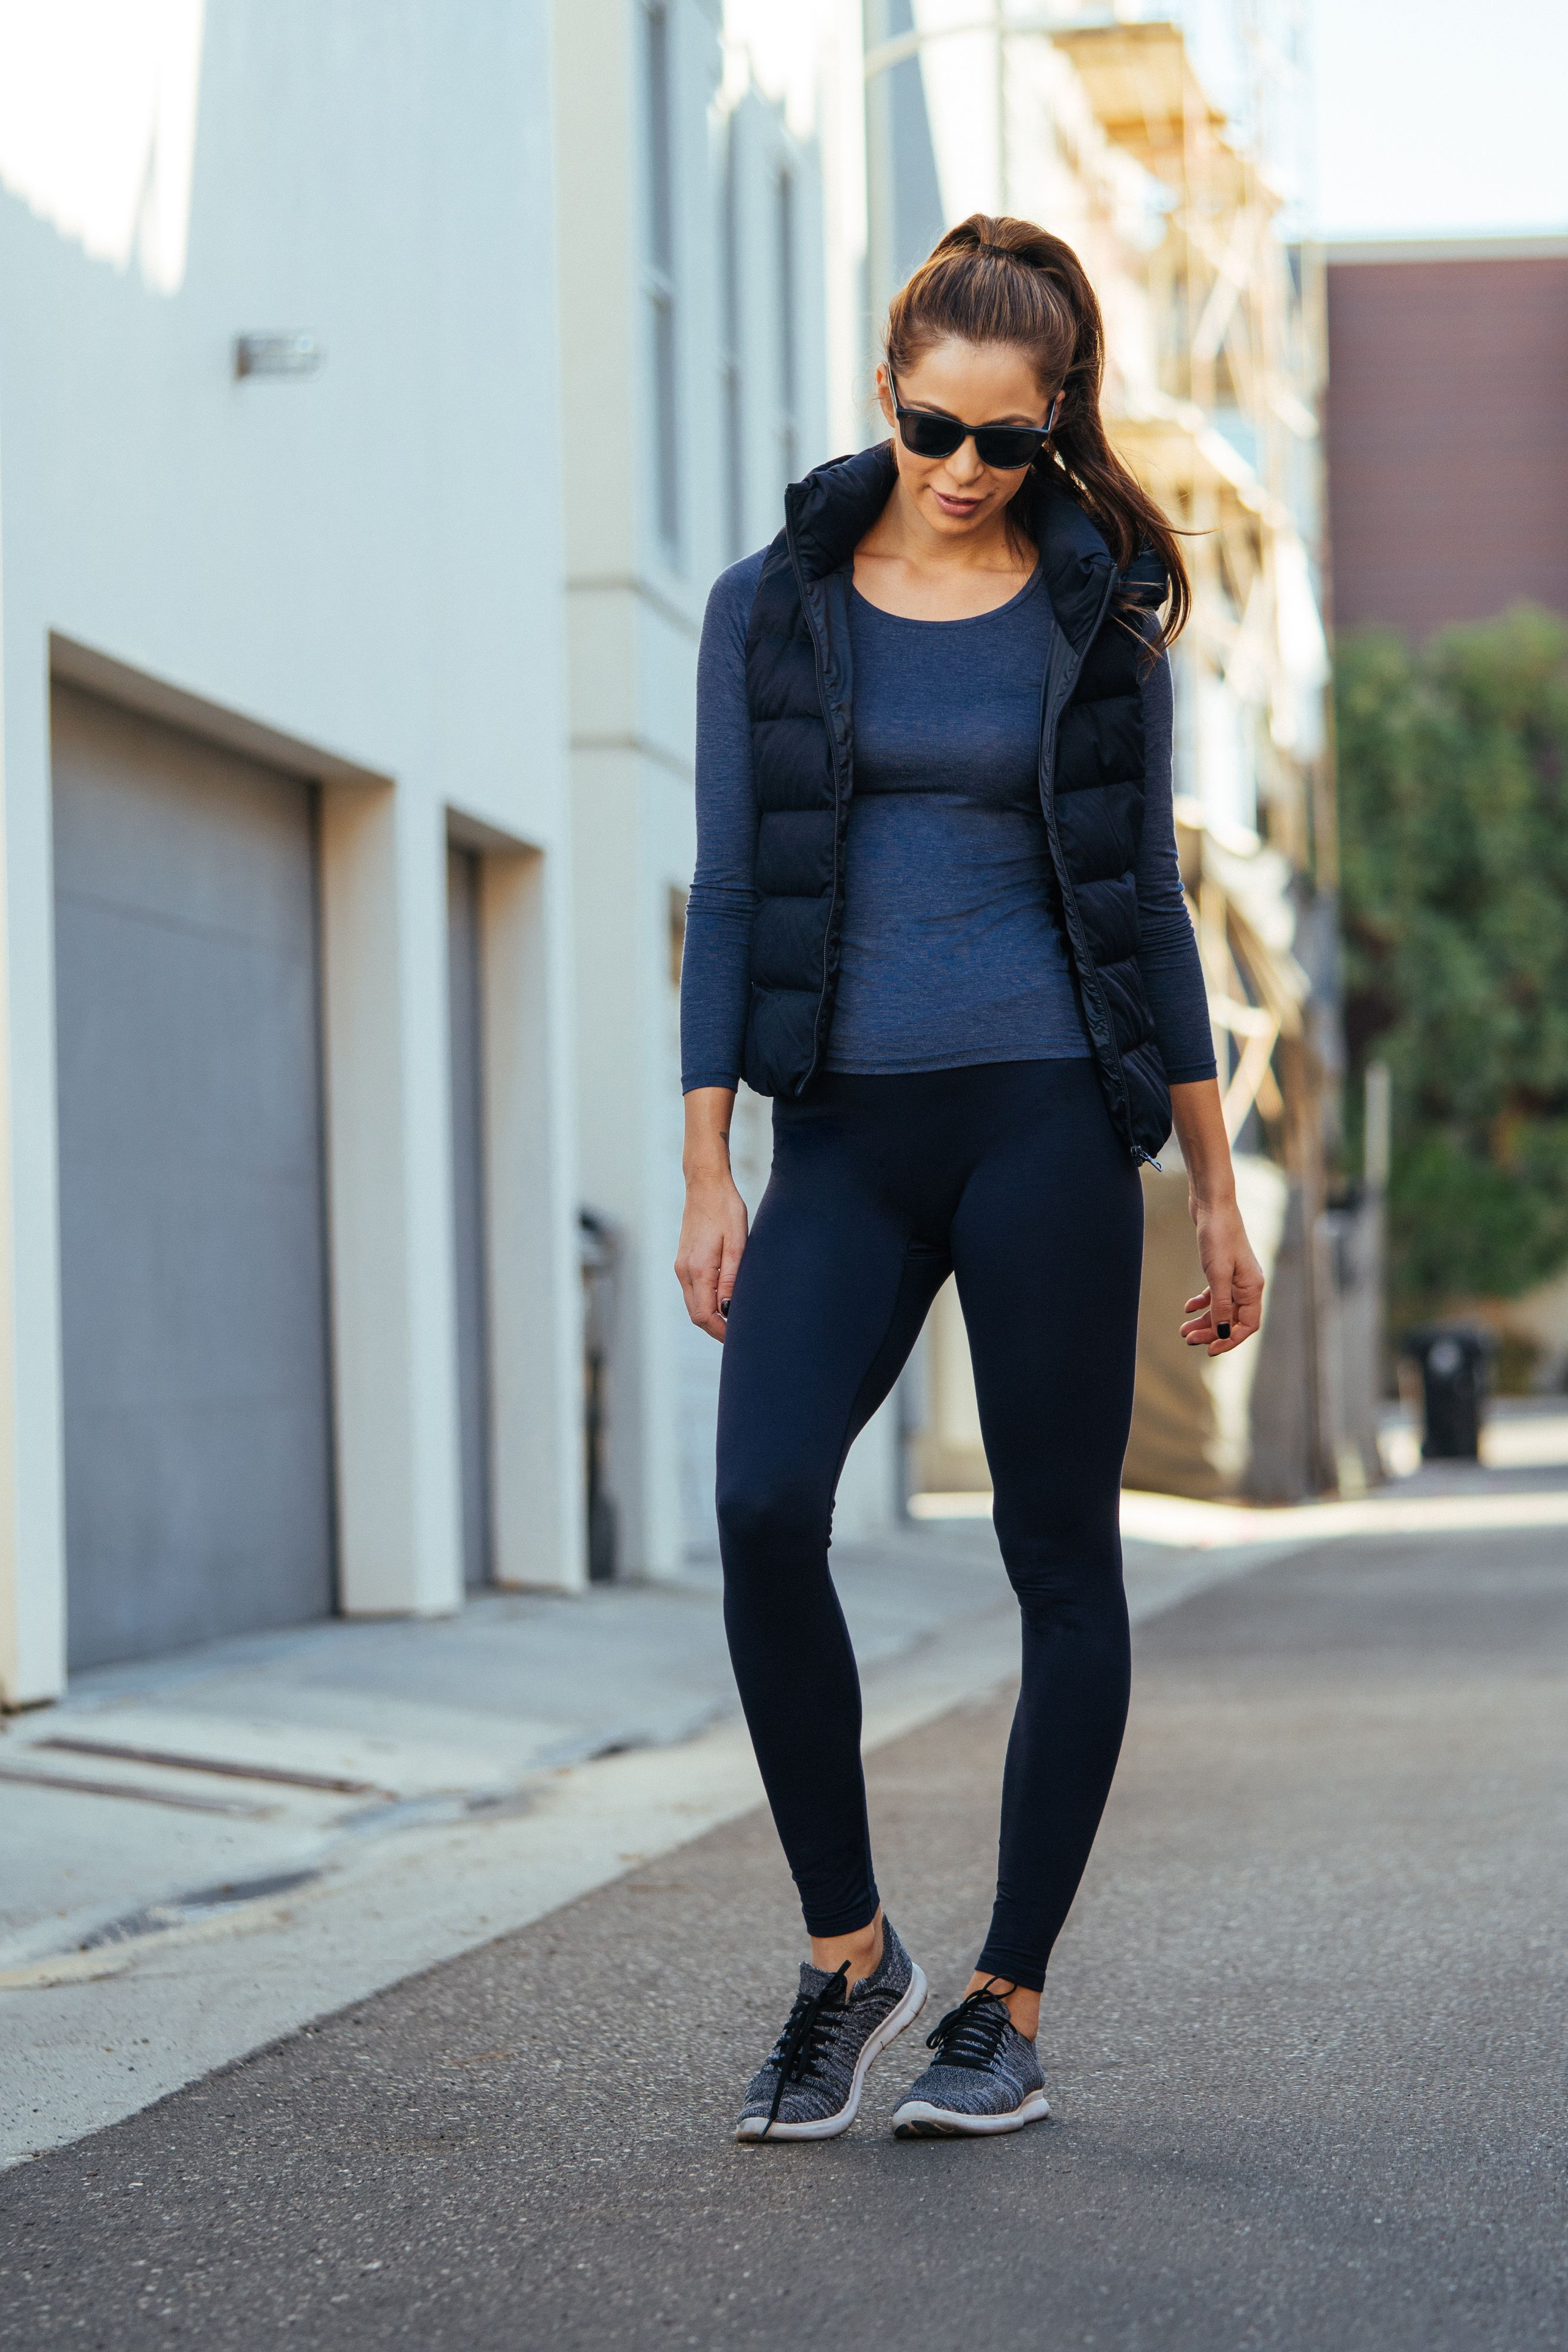 Women Heattech Extra Warm Leggings Sporty Outfits Clothes For Women Clothes [ 4000 x 2667 Pixel ]